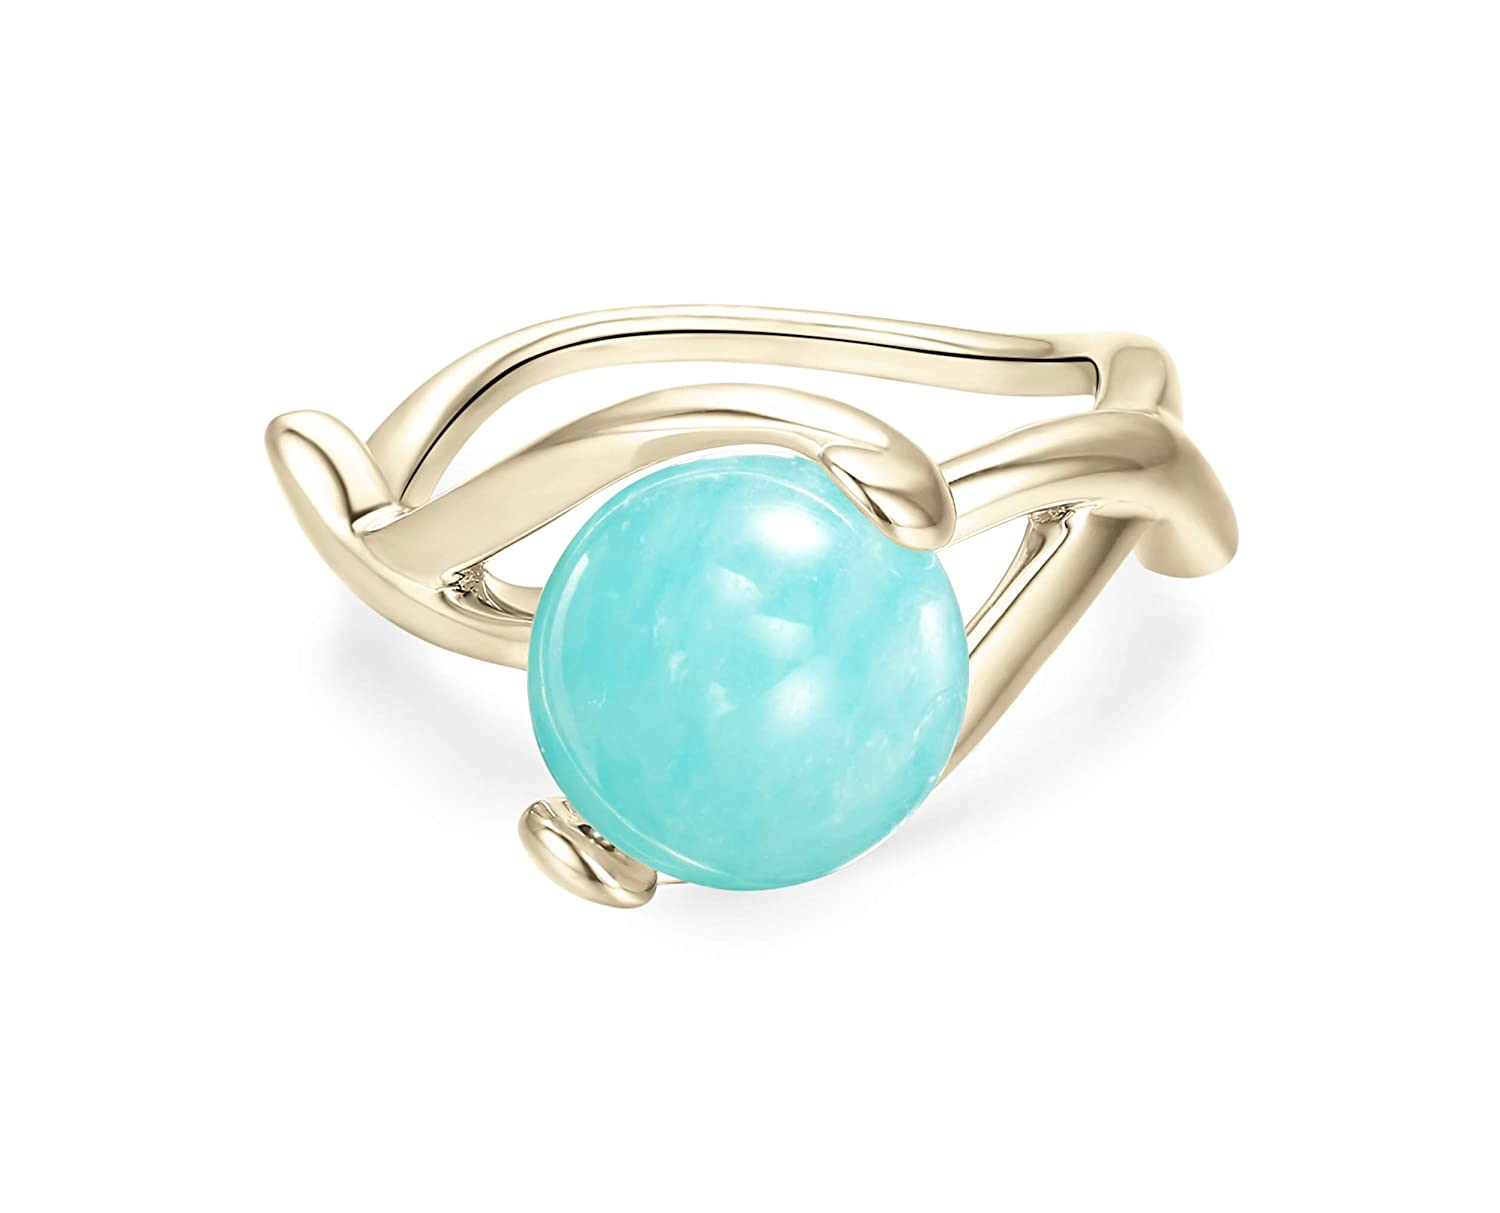 Turquoise Ring By Majade Amazonite Green Engagement Teal Stone Wedding Handmade 925 Sterling Silver Gold Plated: Aqua Green Wedding Rings At Websimilar.org